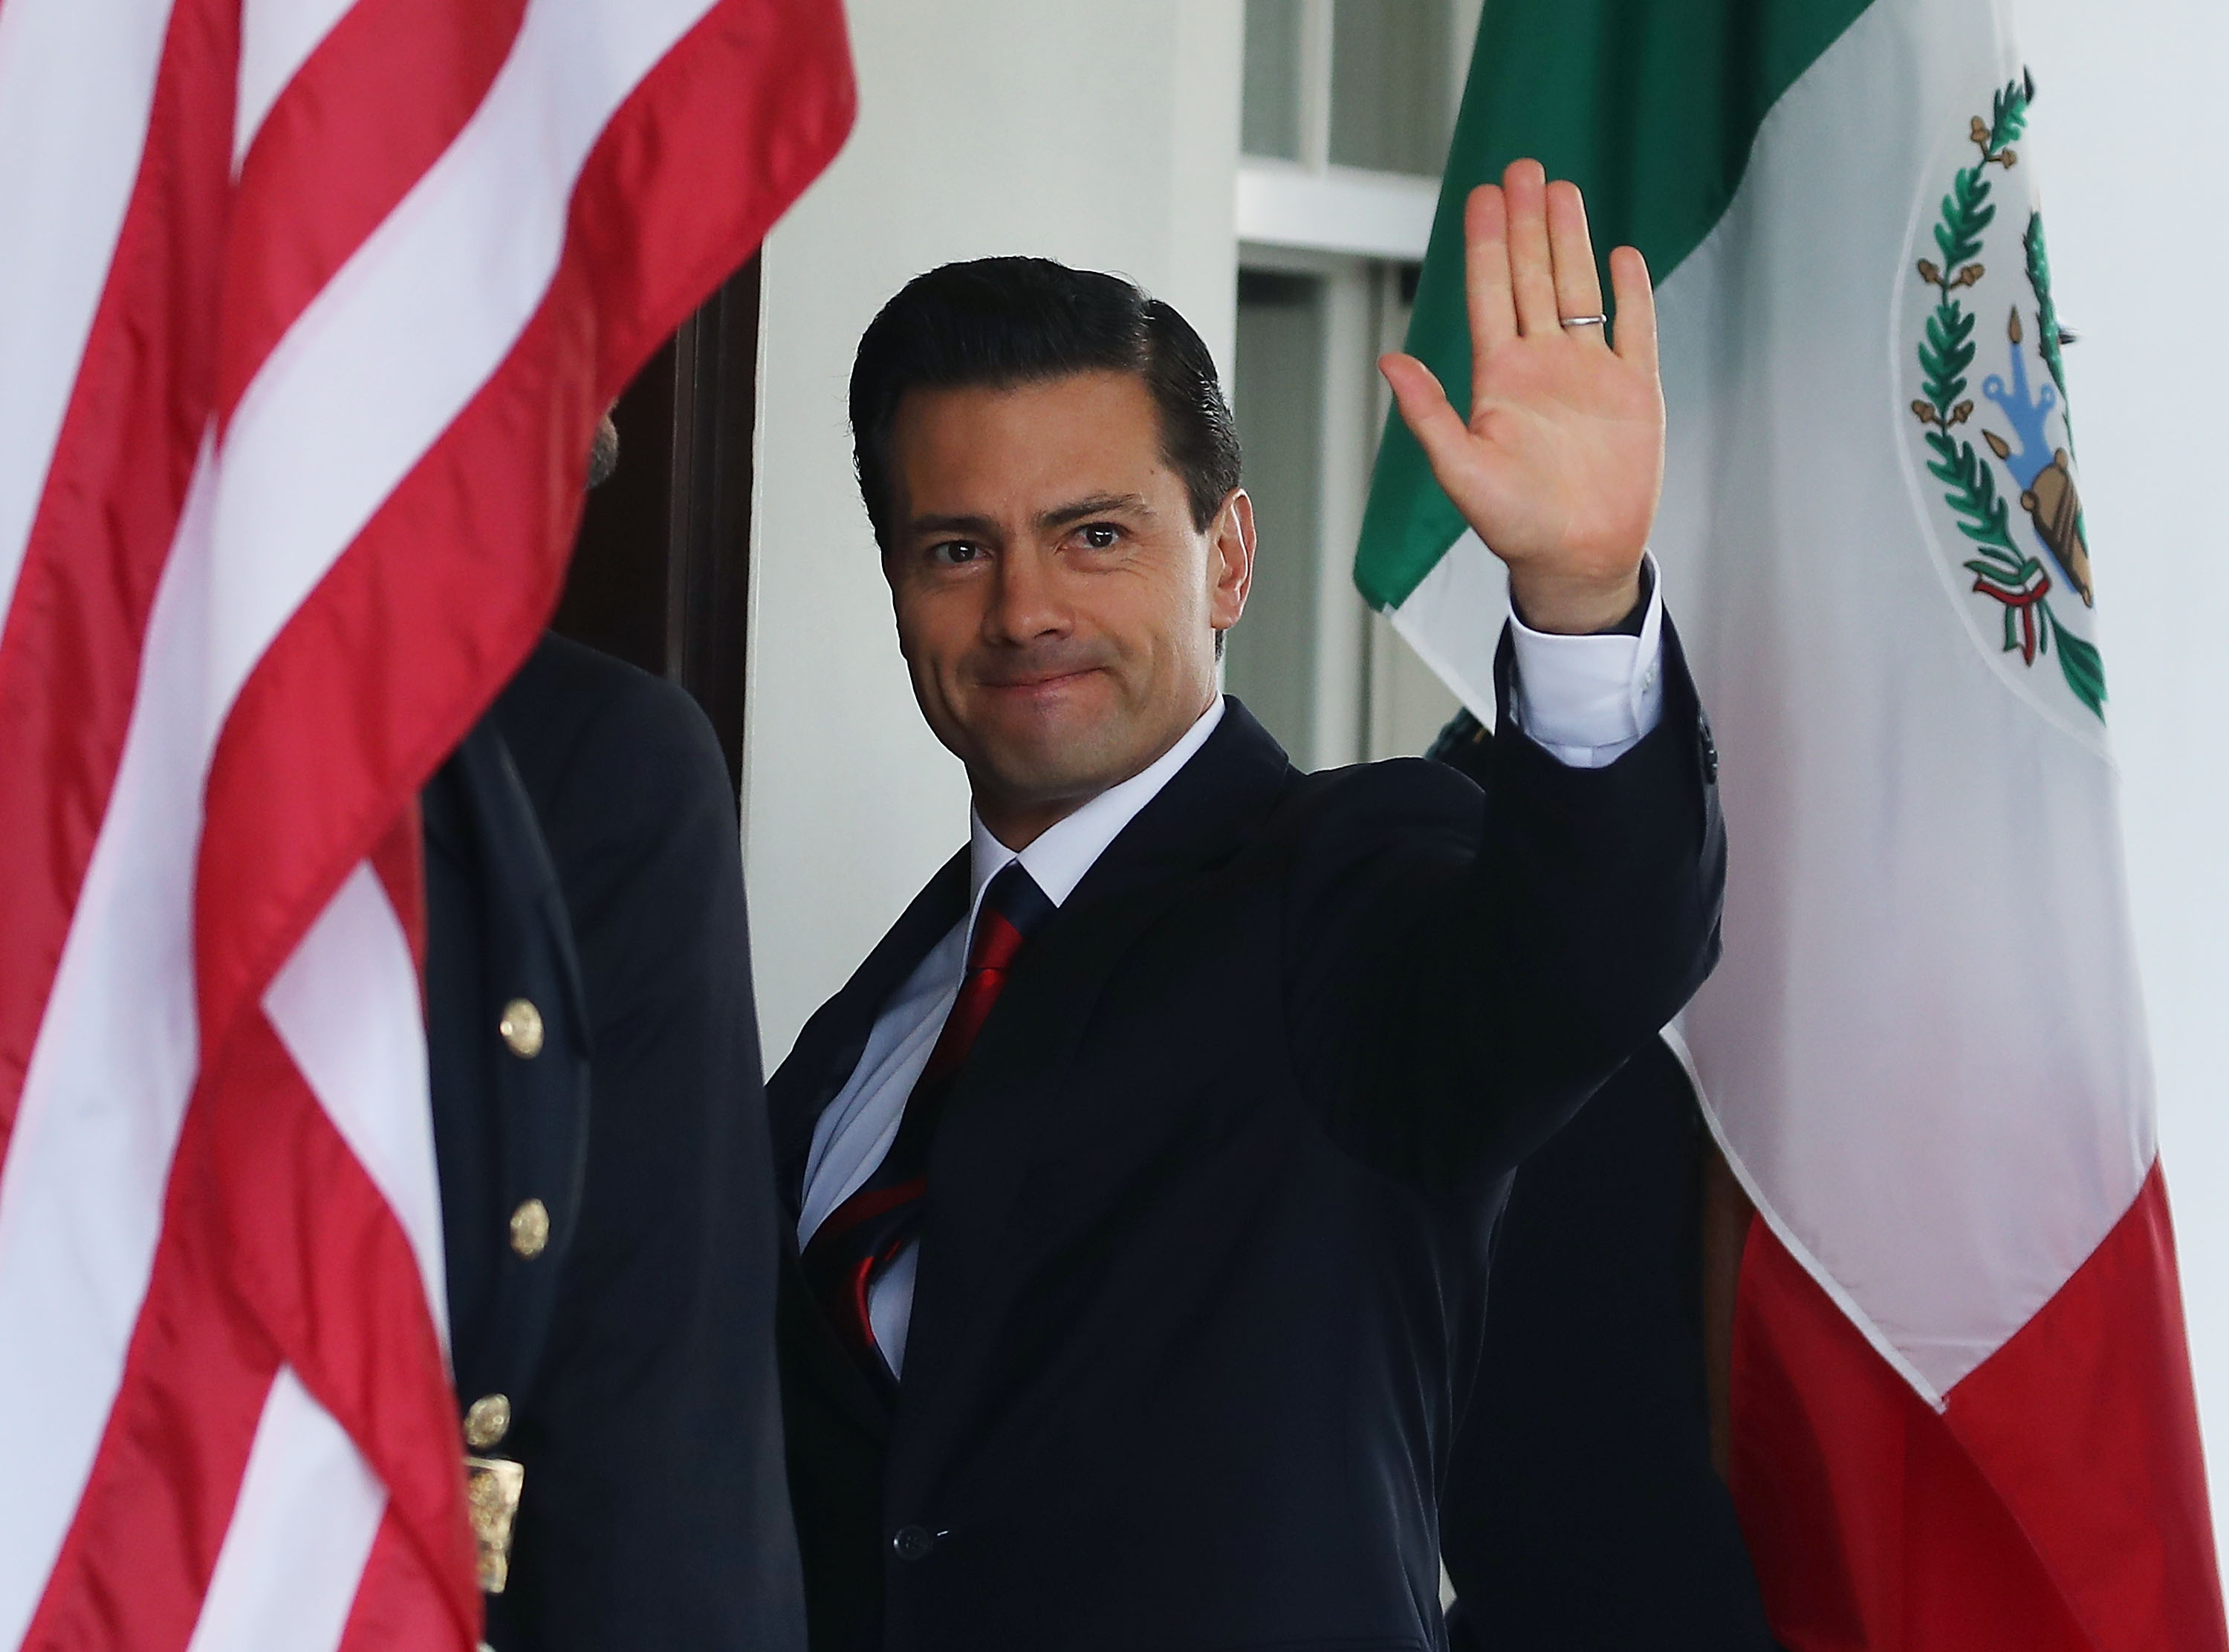 After Criticism, EPN Pens Op-Ed to Explain Why He Met With Donald Trump